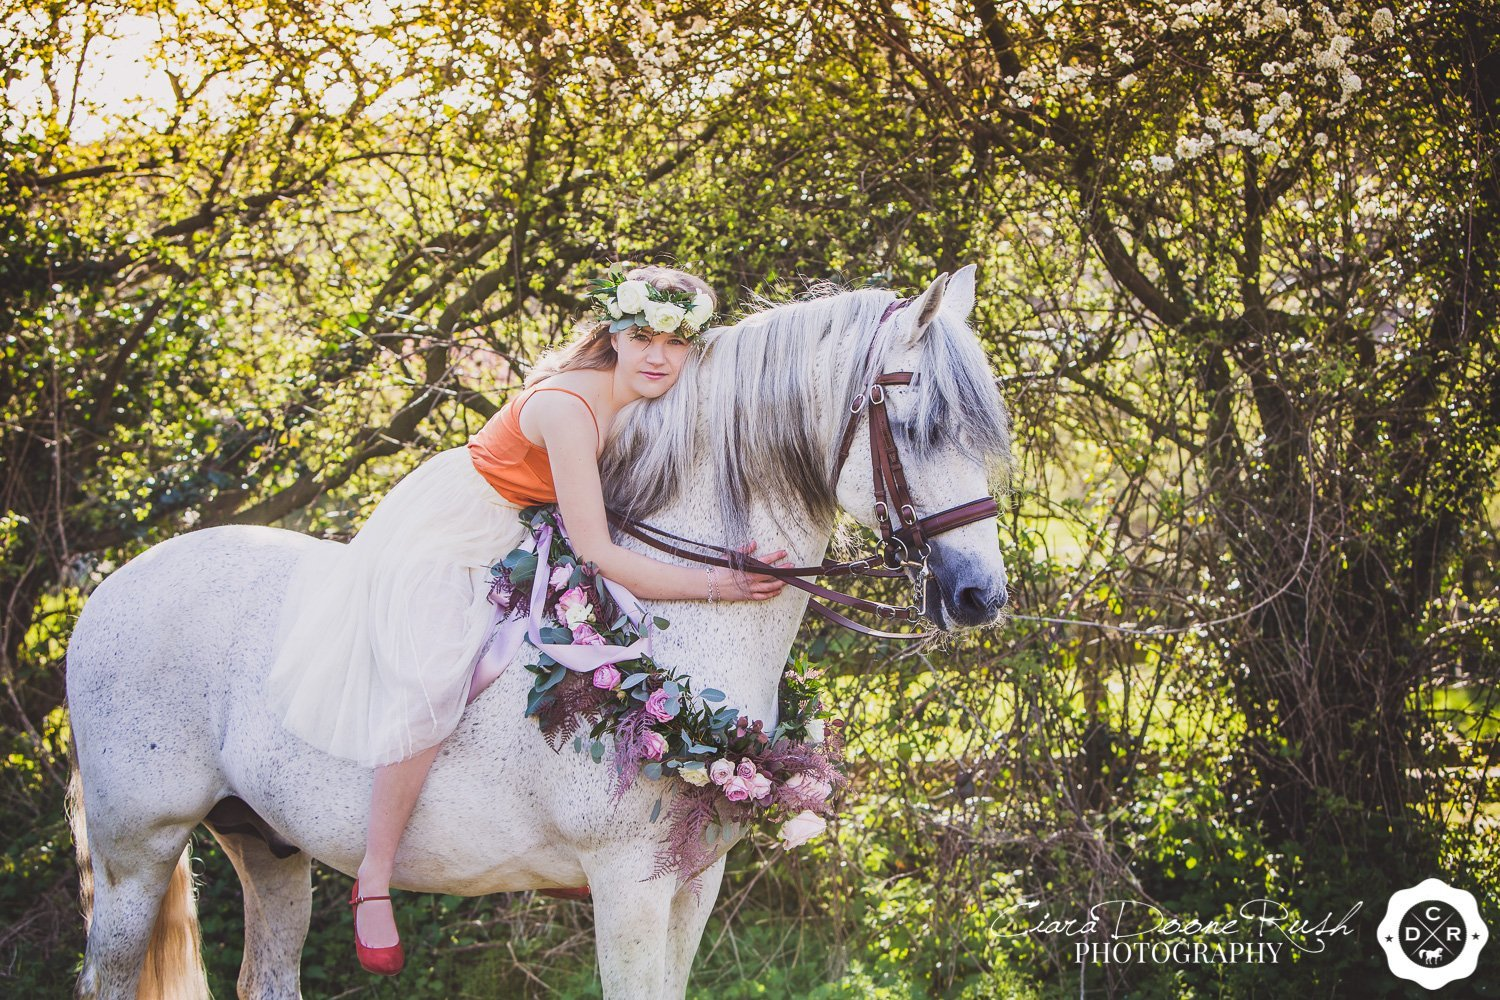 A girl and her horse on a minus the mud photo shoot